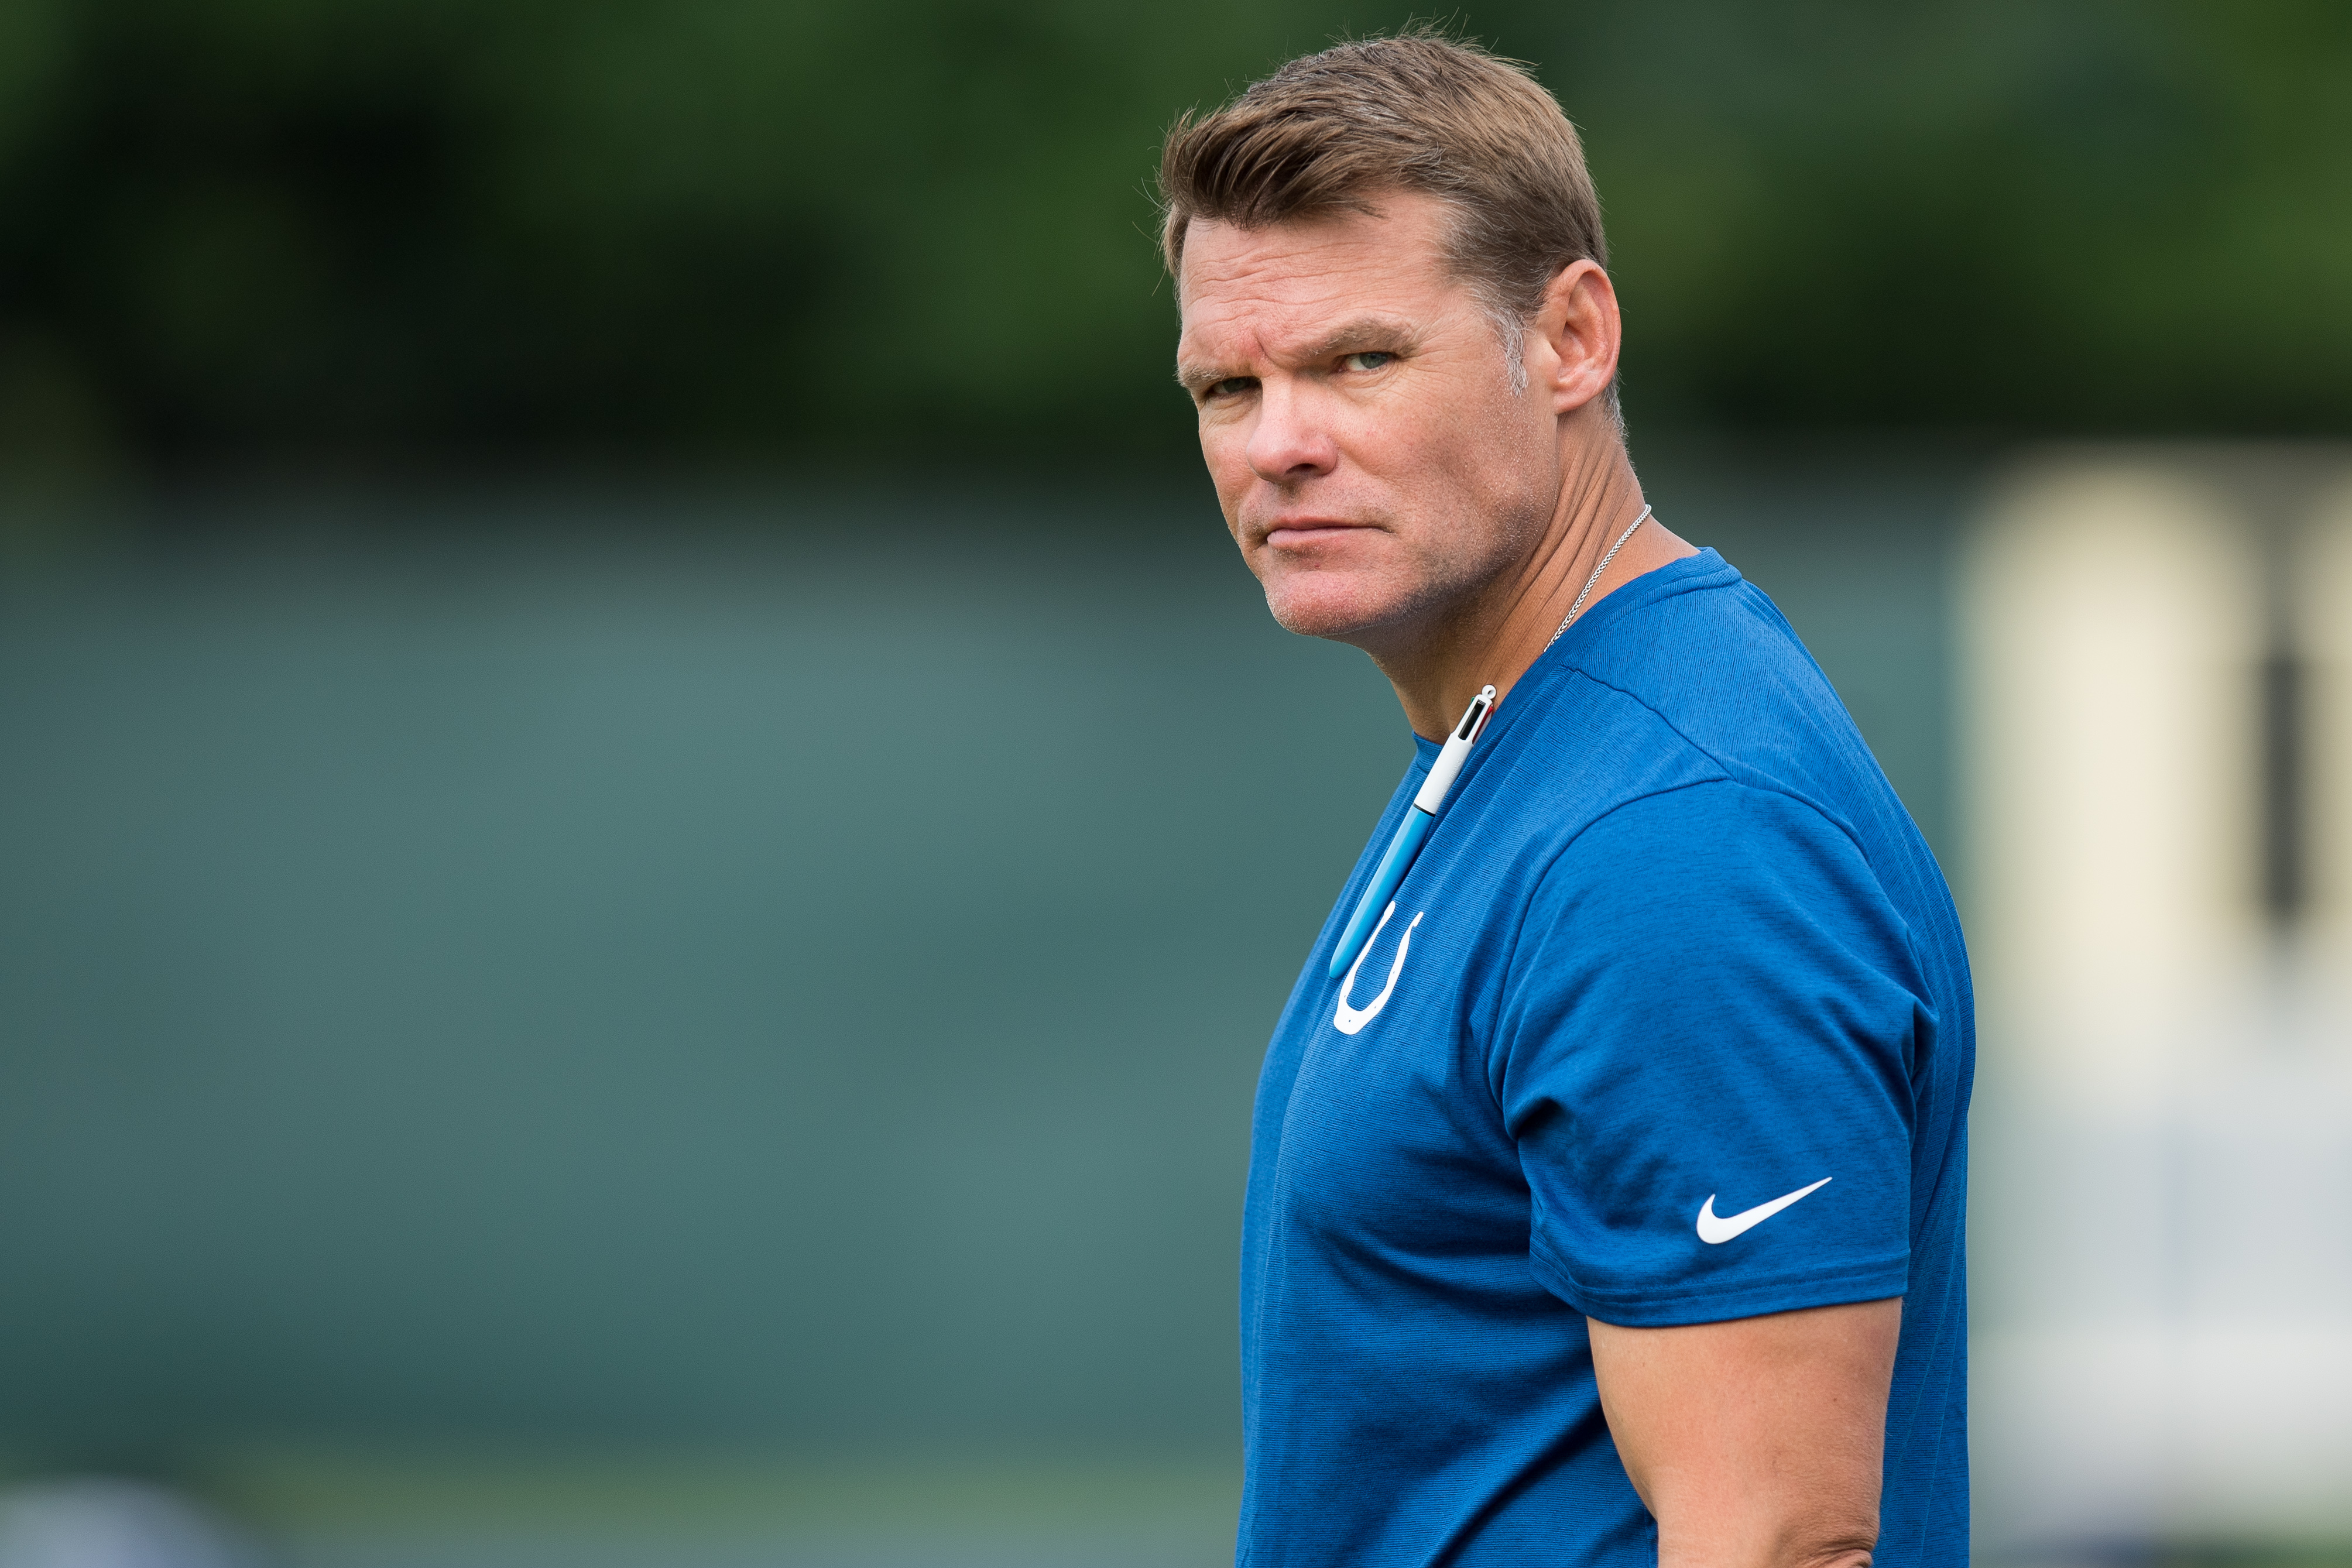 NFL: AUG 11 Colts Training Camp